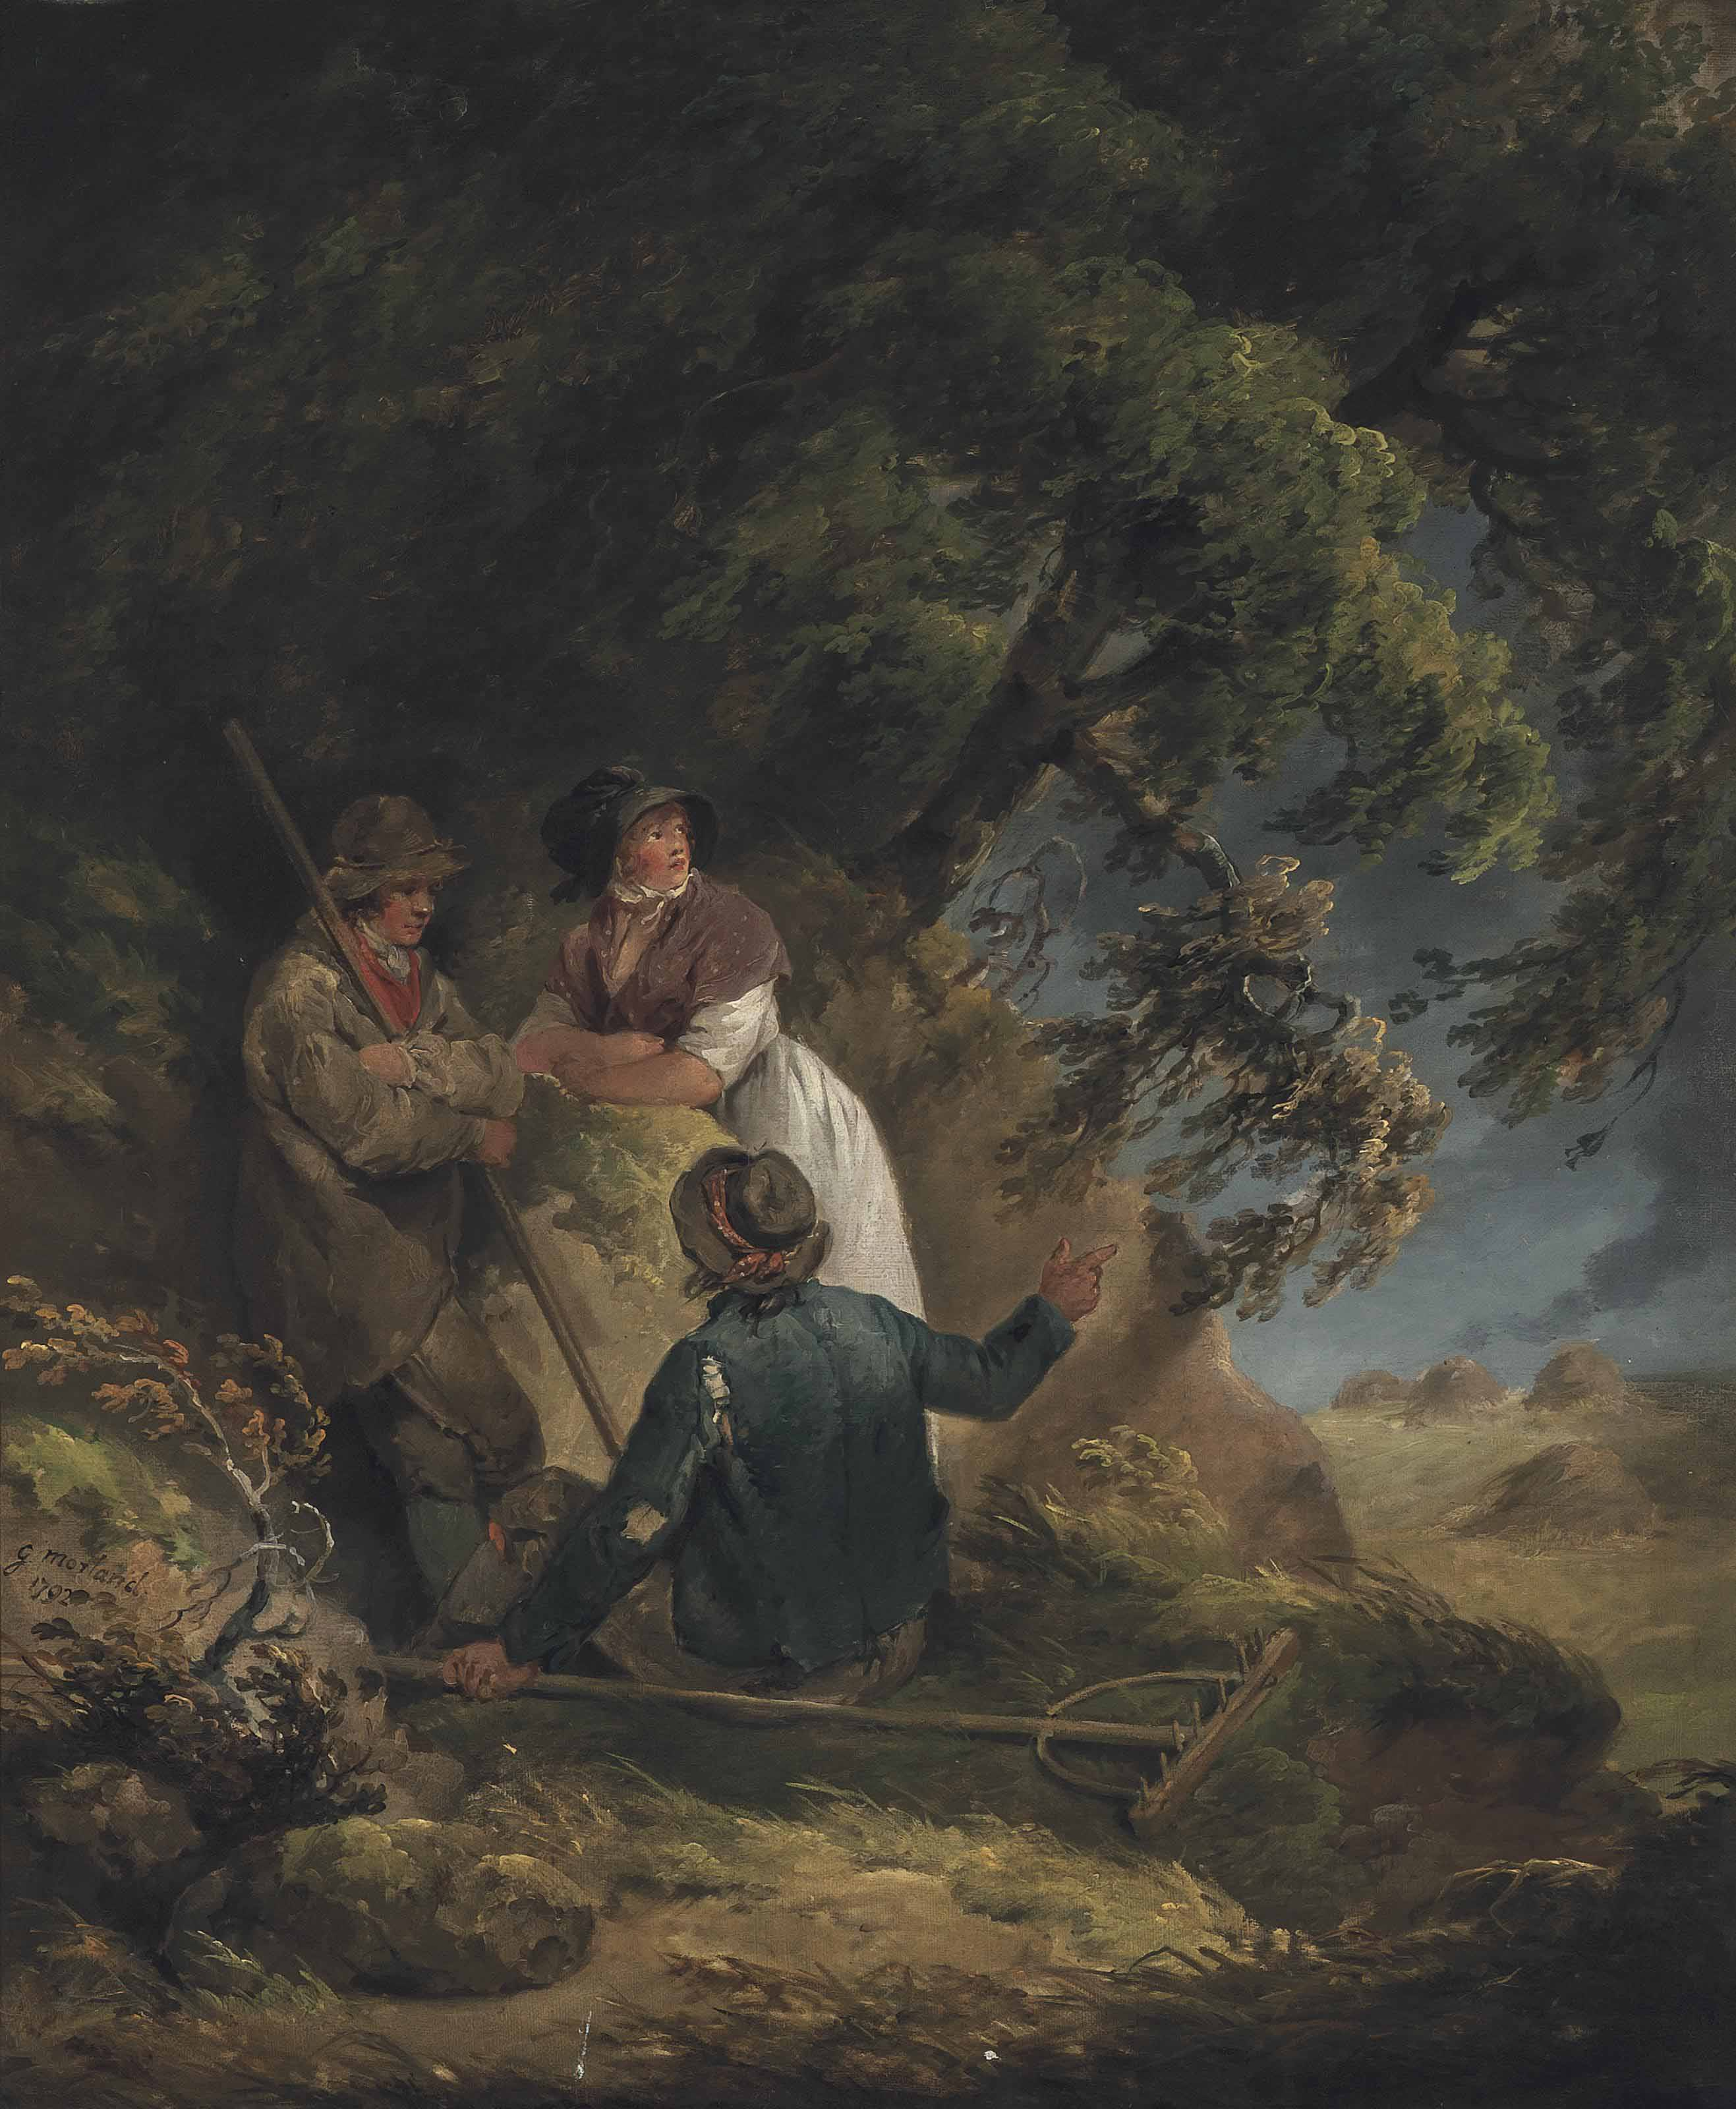 A wooded landscape with two haymakers and a peasant girl taking shelter from a storm